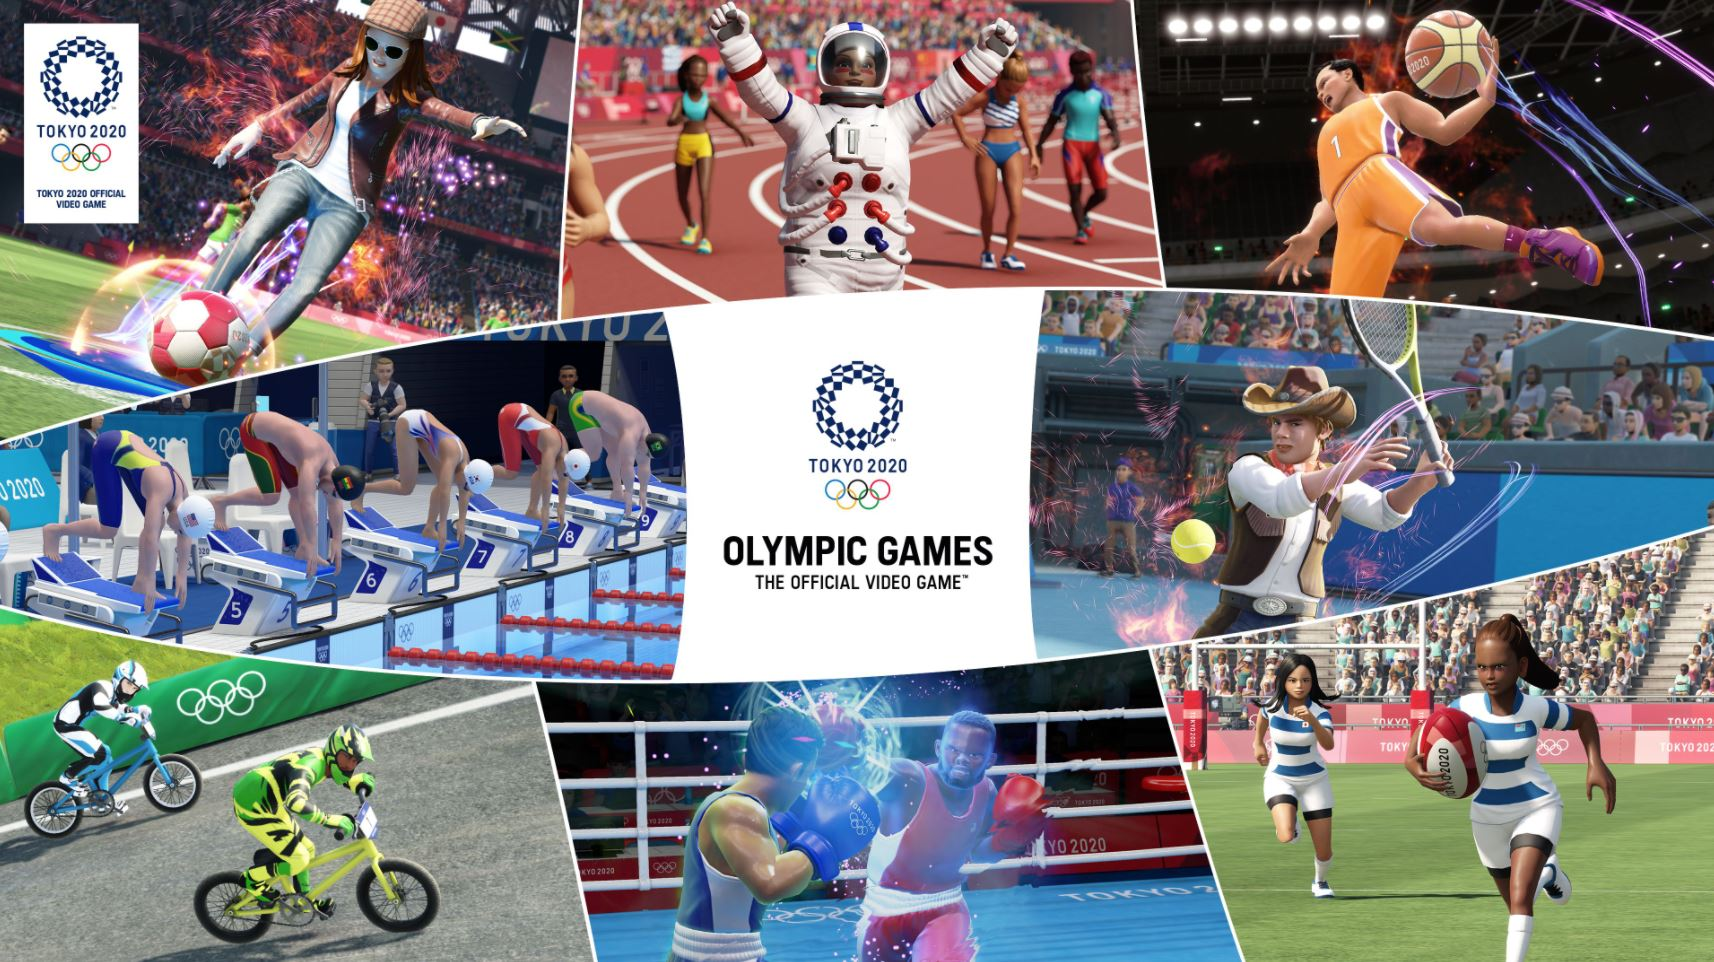 olympic-games-tokyo-2020-the-official-video-game-ps4-news-reviews-videos